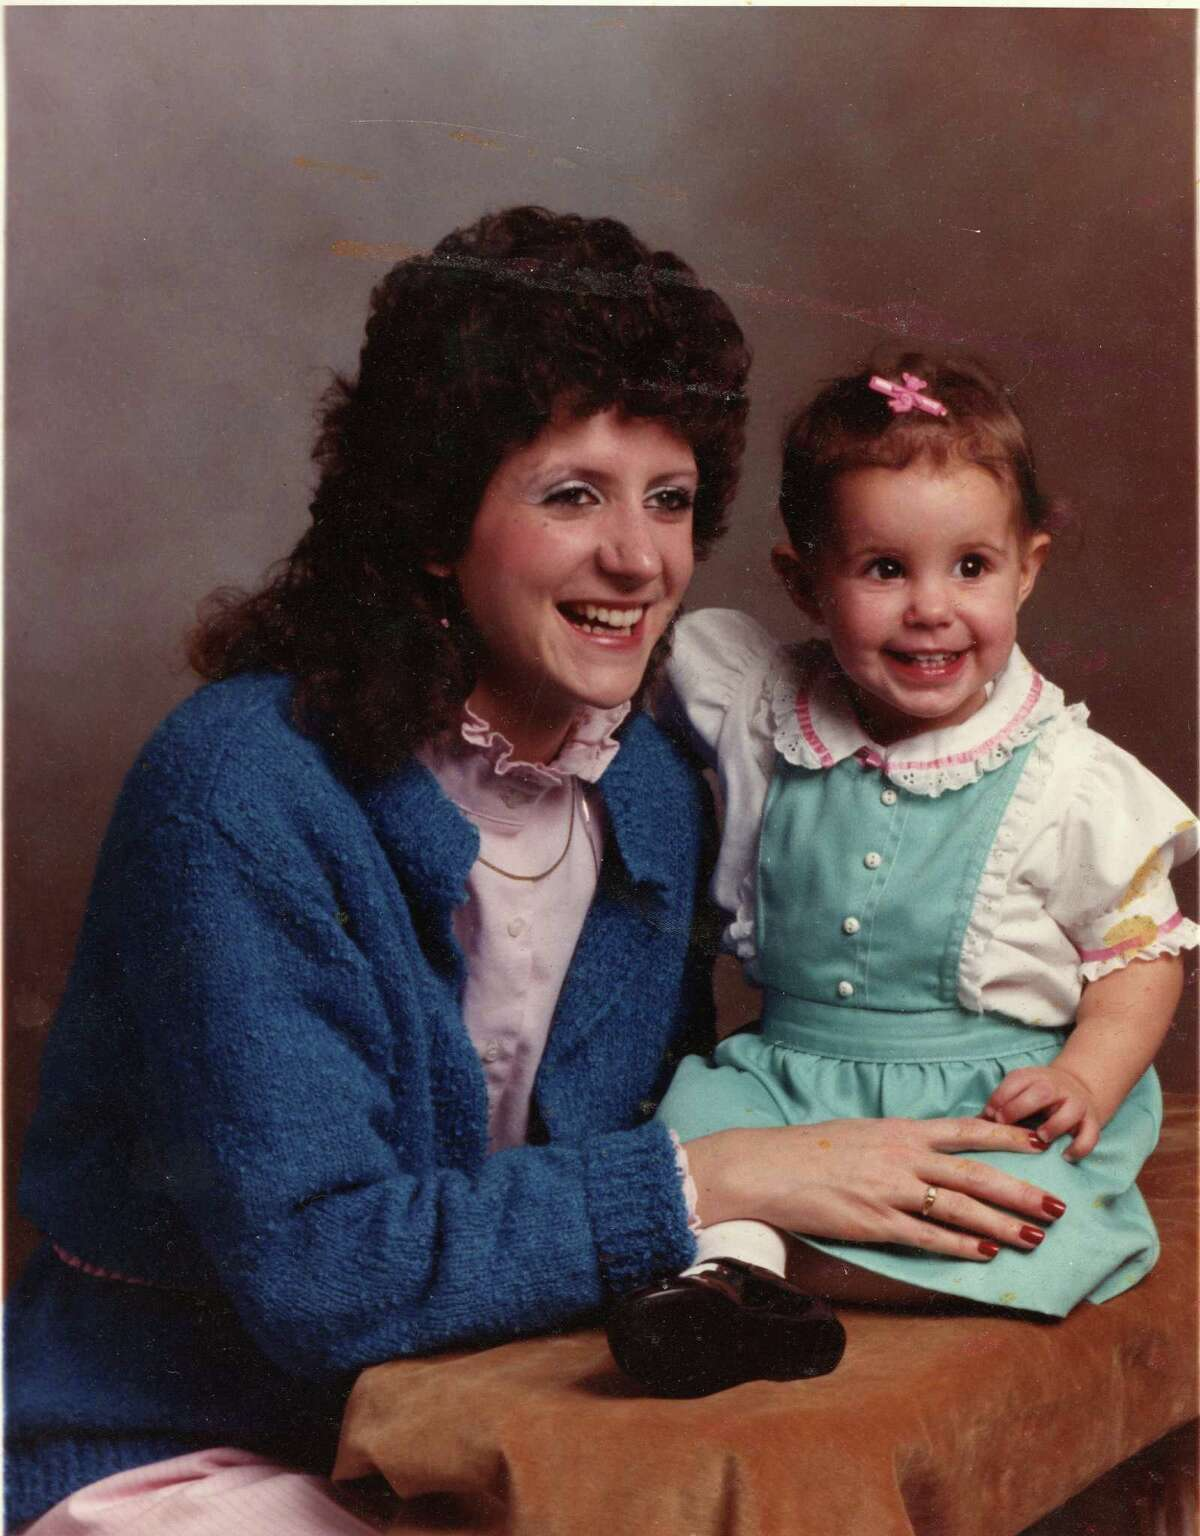 Wendy Davis with her daughter Amber at approx 18 months.